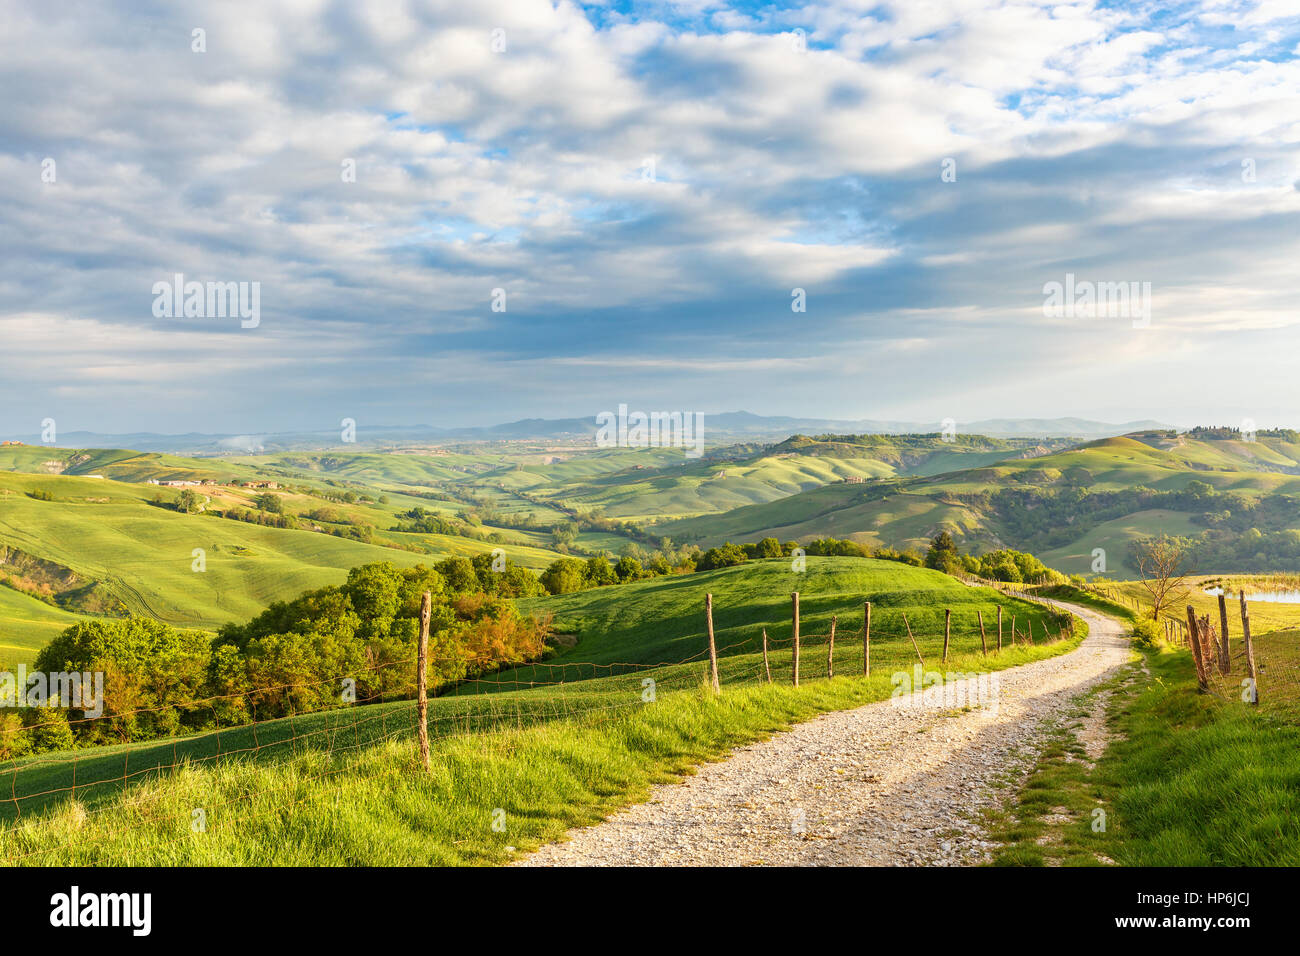 Rural view of the valley with a rolling landscape and a dirt road in Tuscany, Italy Stock Photo